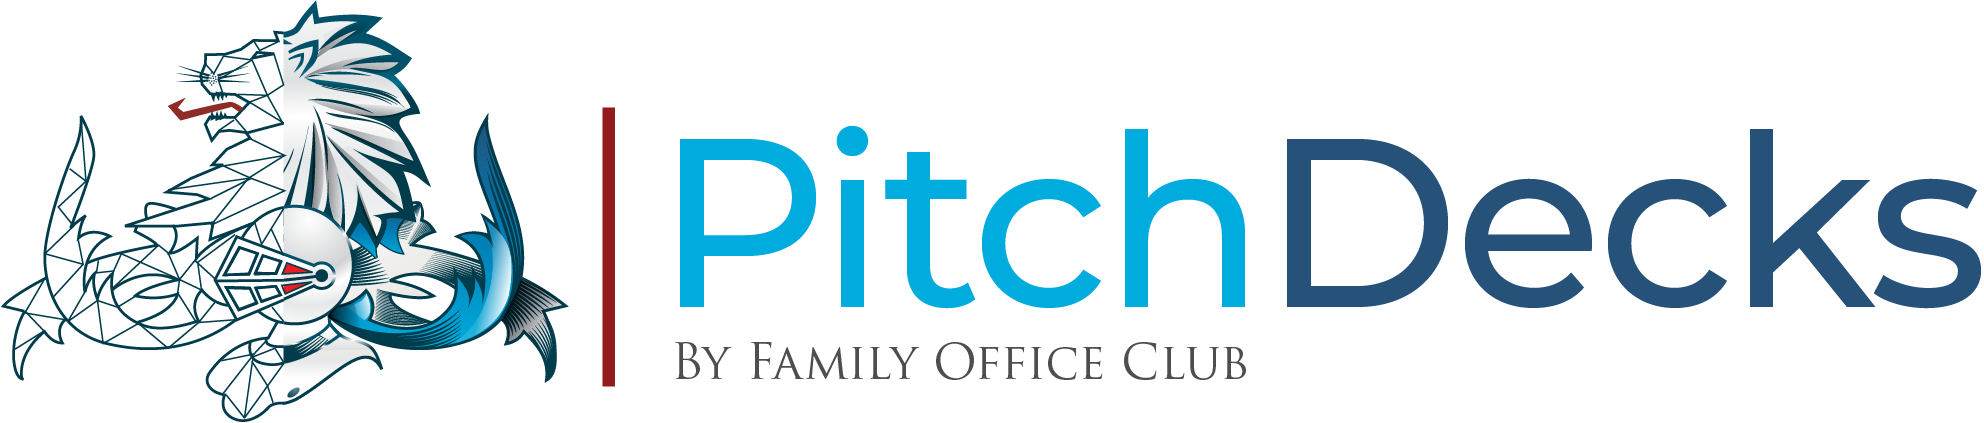 PitchDecks.com